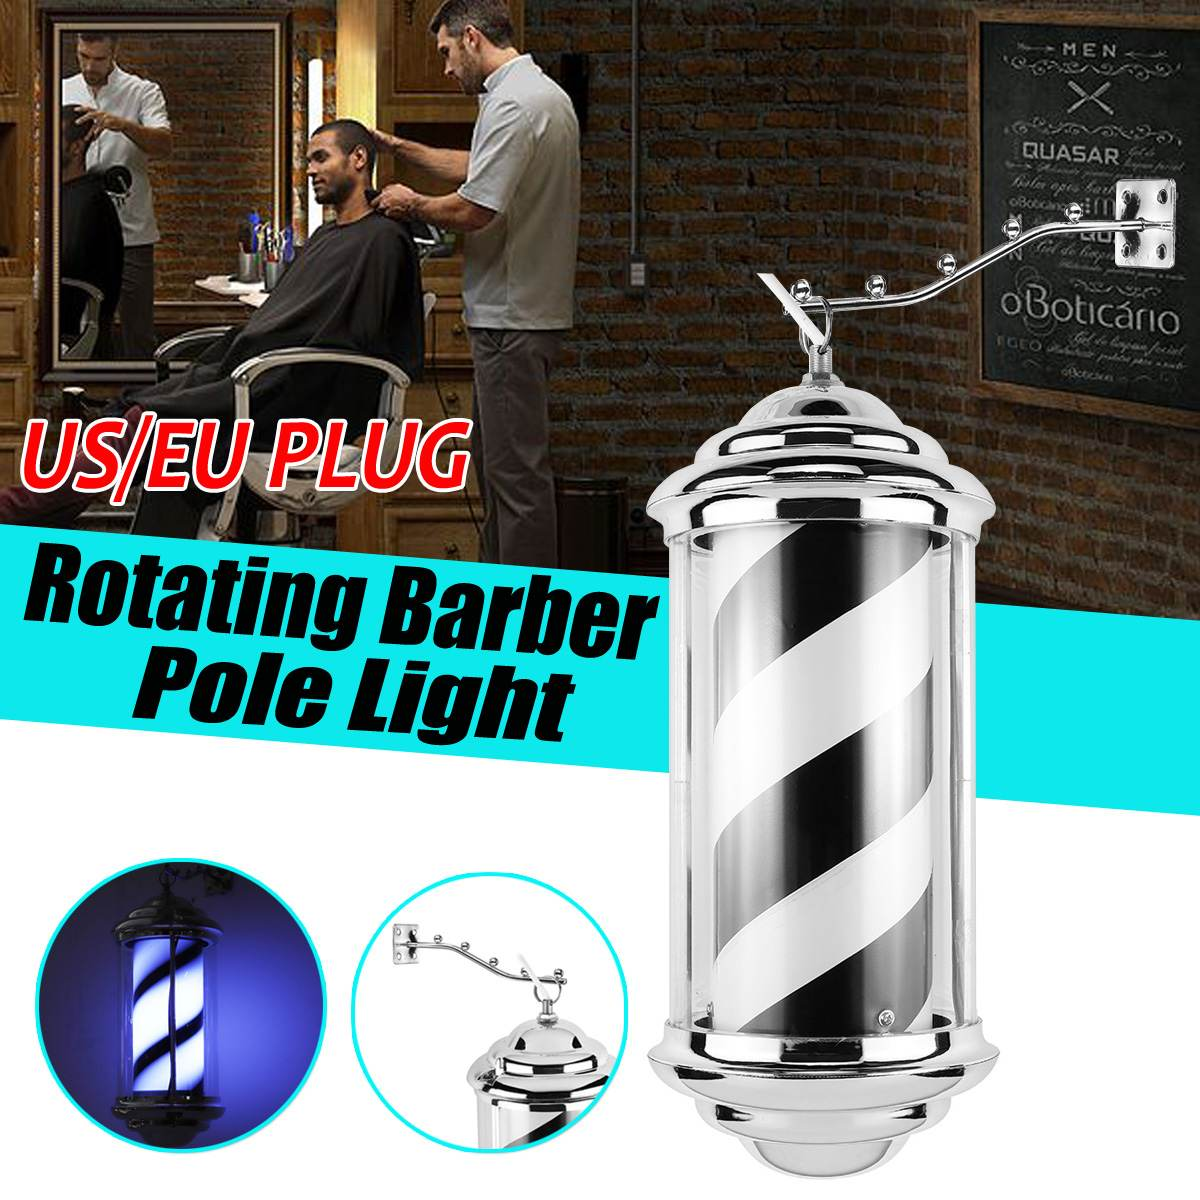 Hair Salon Light Barber Pole Led Light Rotating Light Lamp With Lifting Arm Marker Lamp LED Downlights 220V EU / 110V US Plug